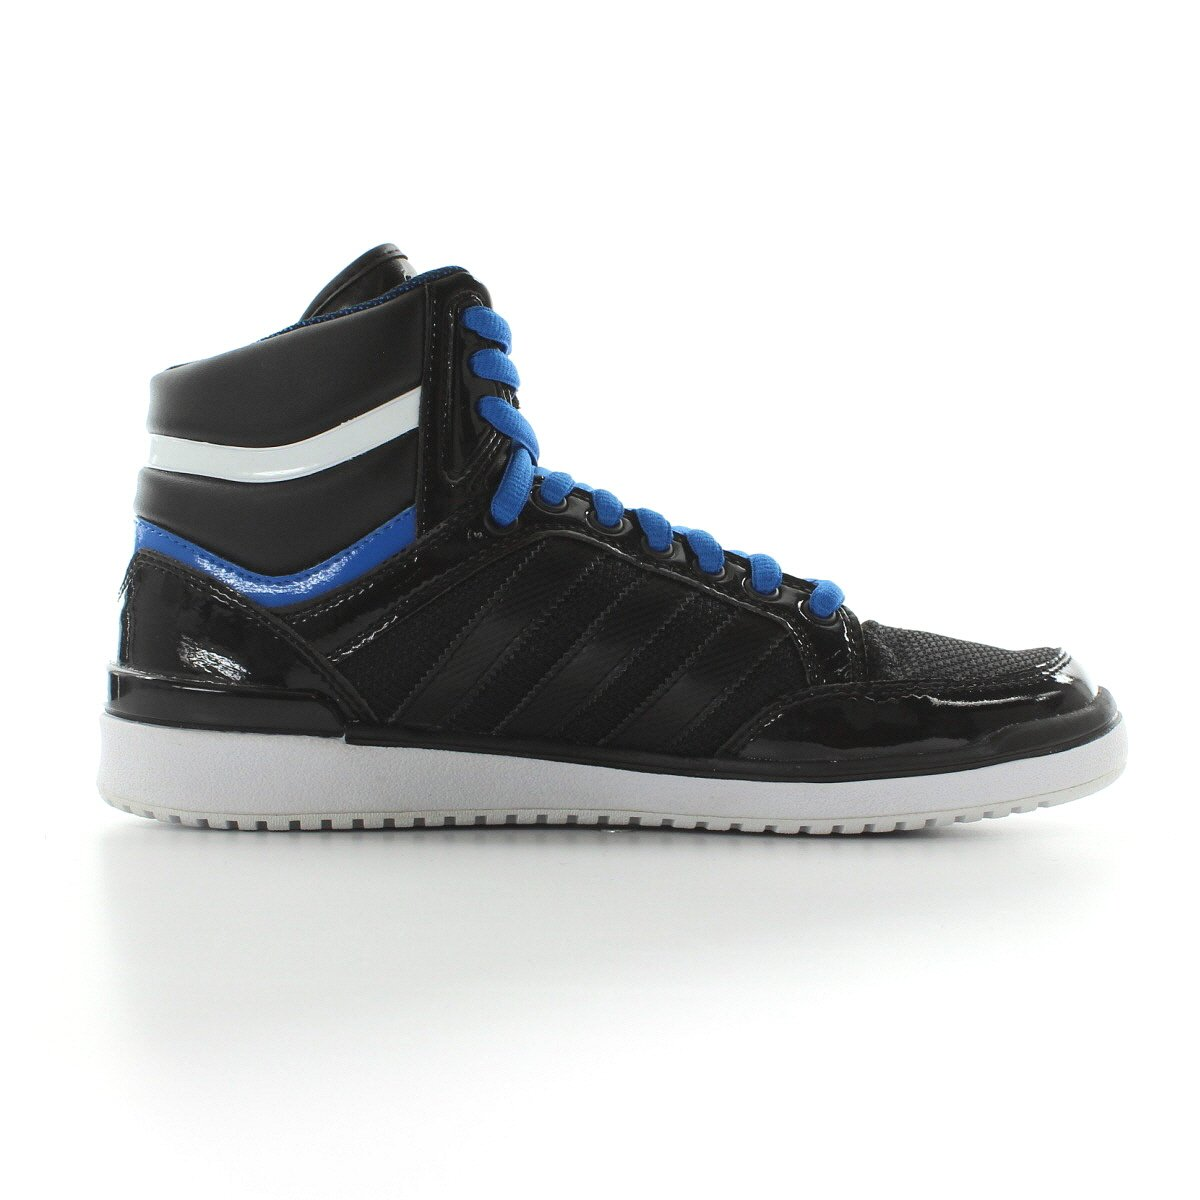 Adidas Originals TOP TEN REMODEL G42546 SCHUHE SNEAKER